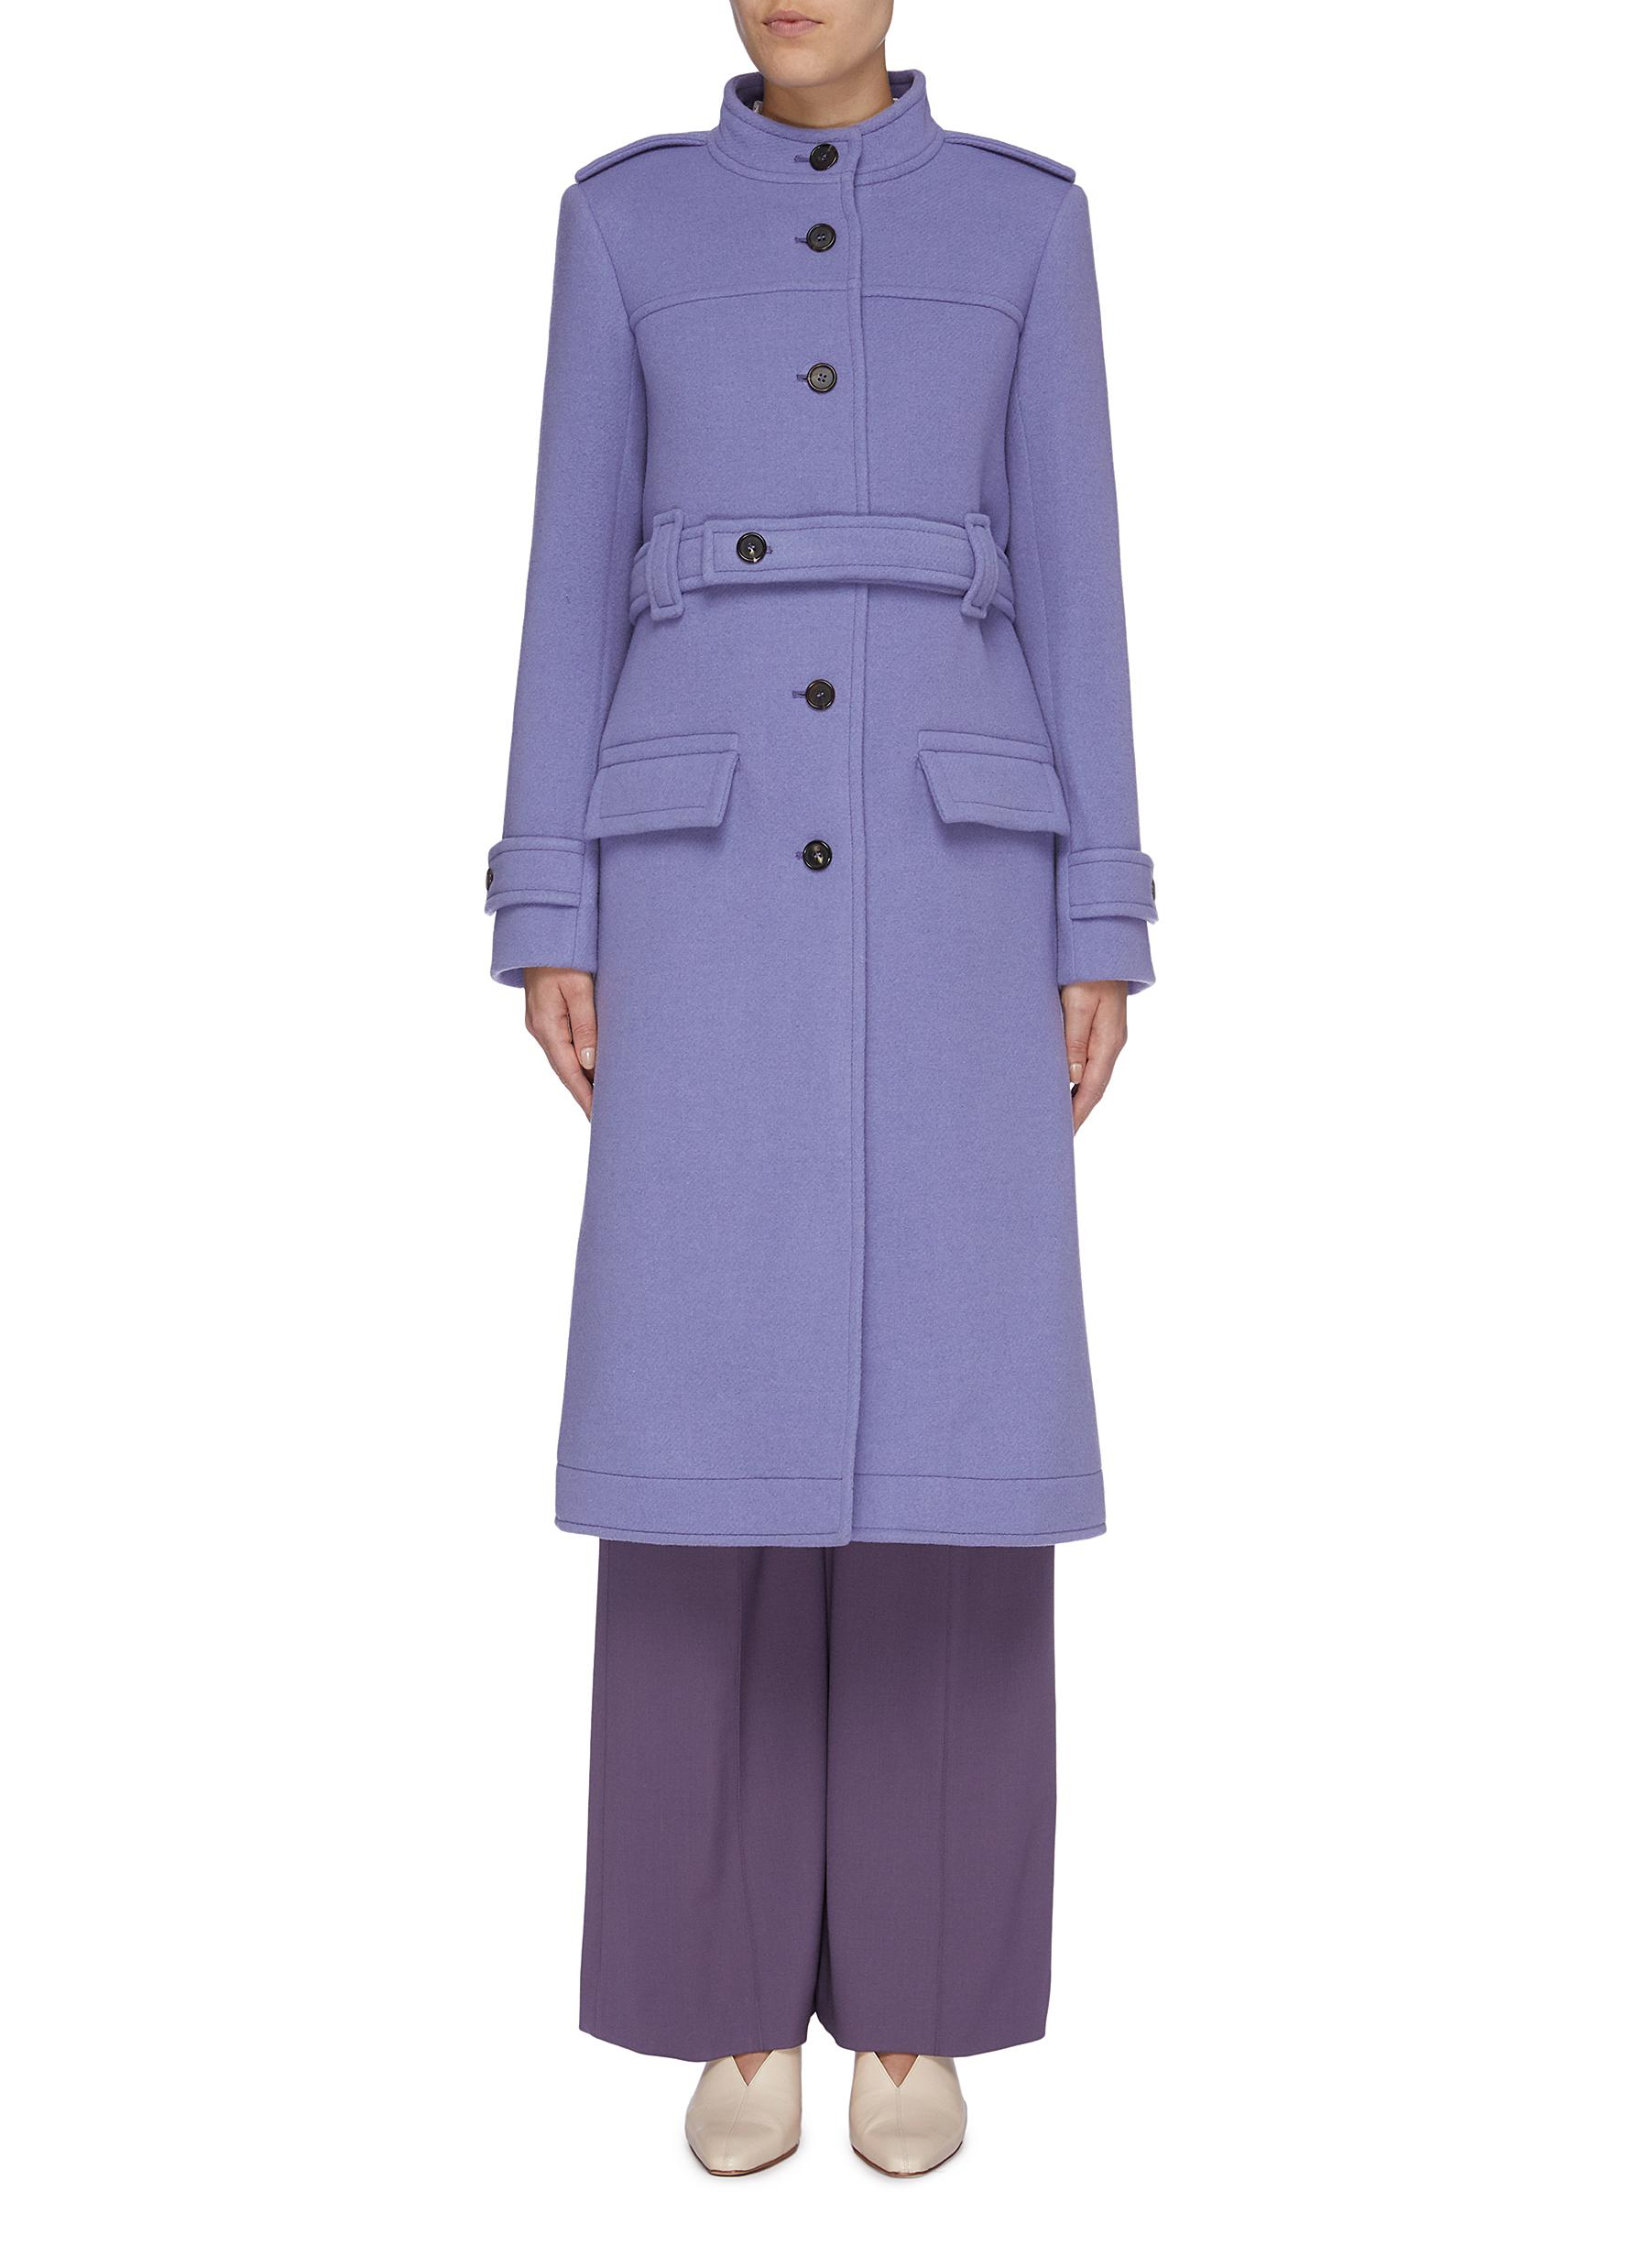 Belted melton military coat by Chloé